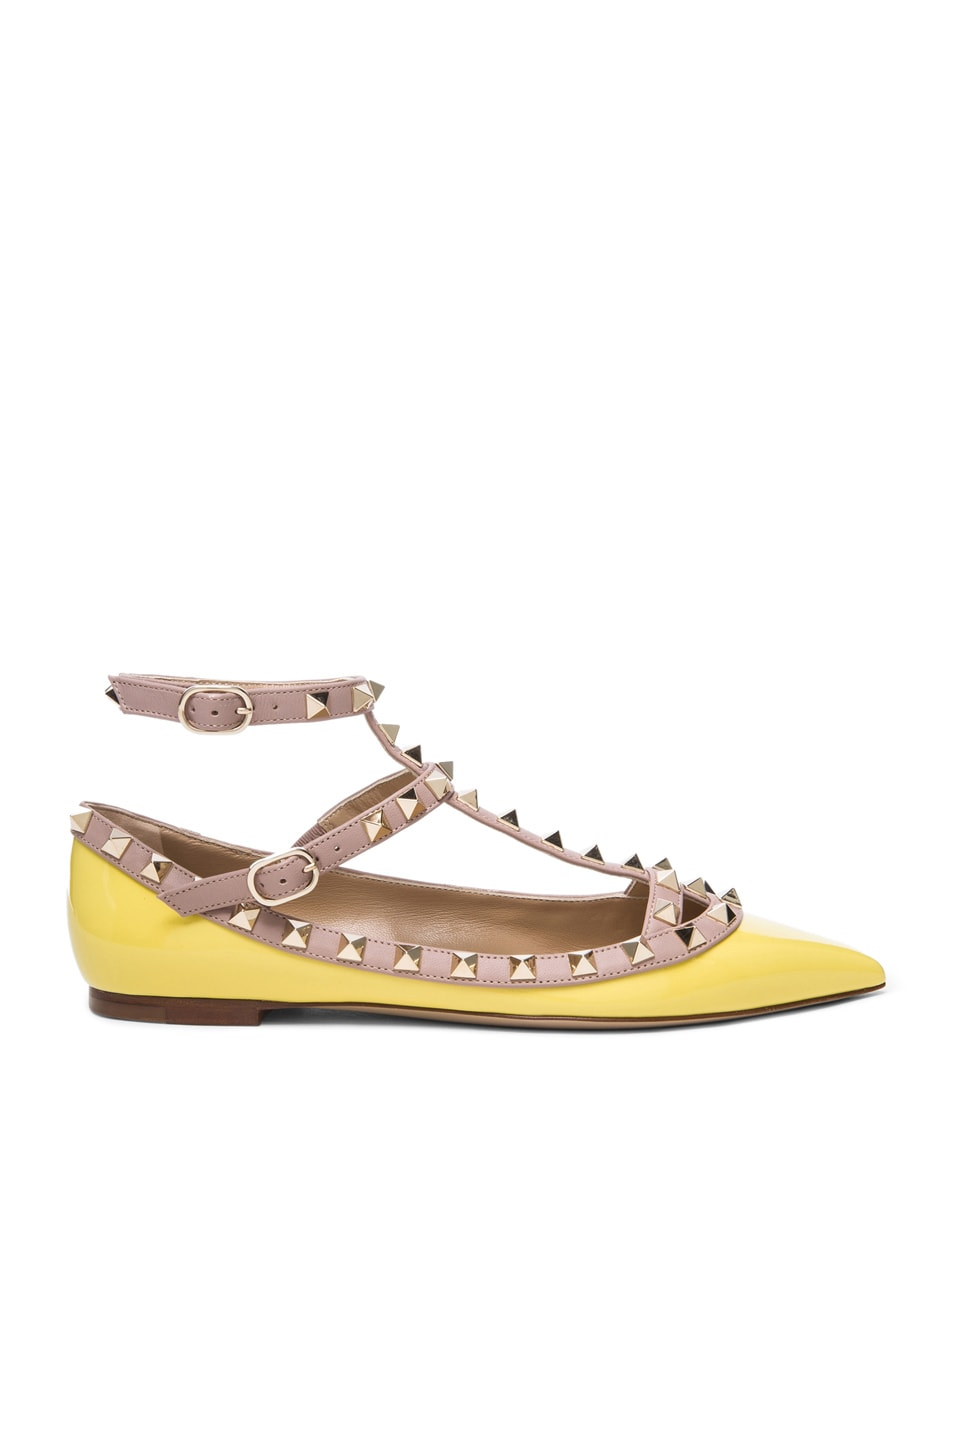 Image 1 of Valentino Rockstud Patent Cage Flats in Yellow